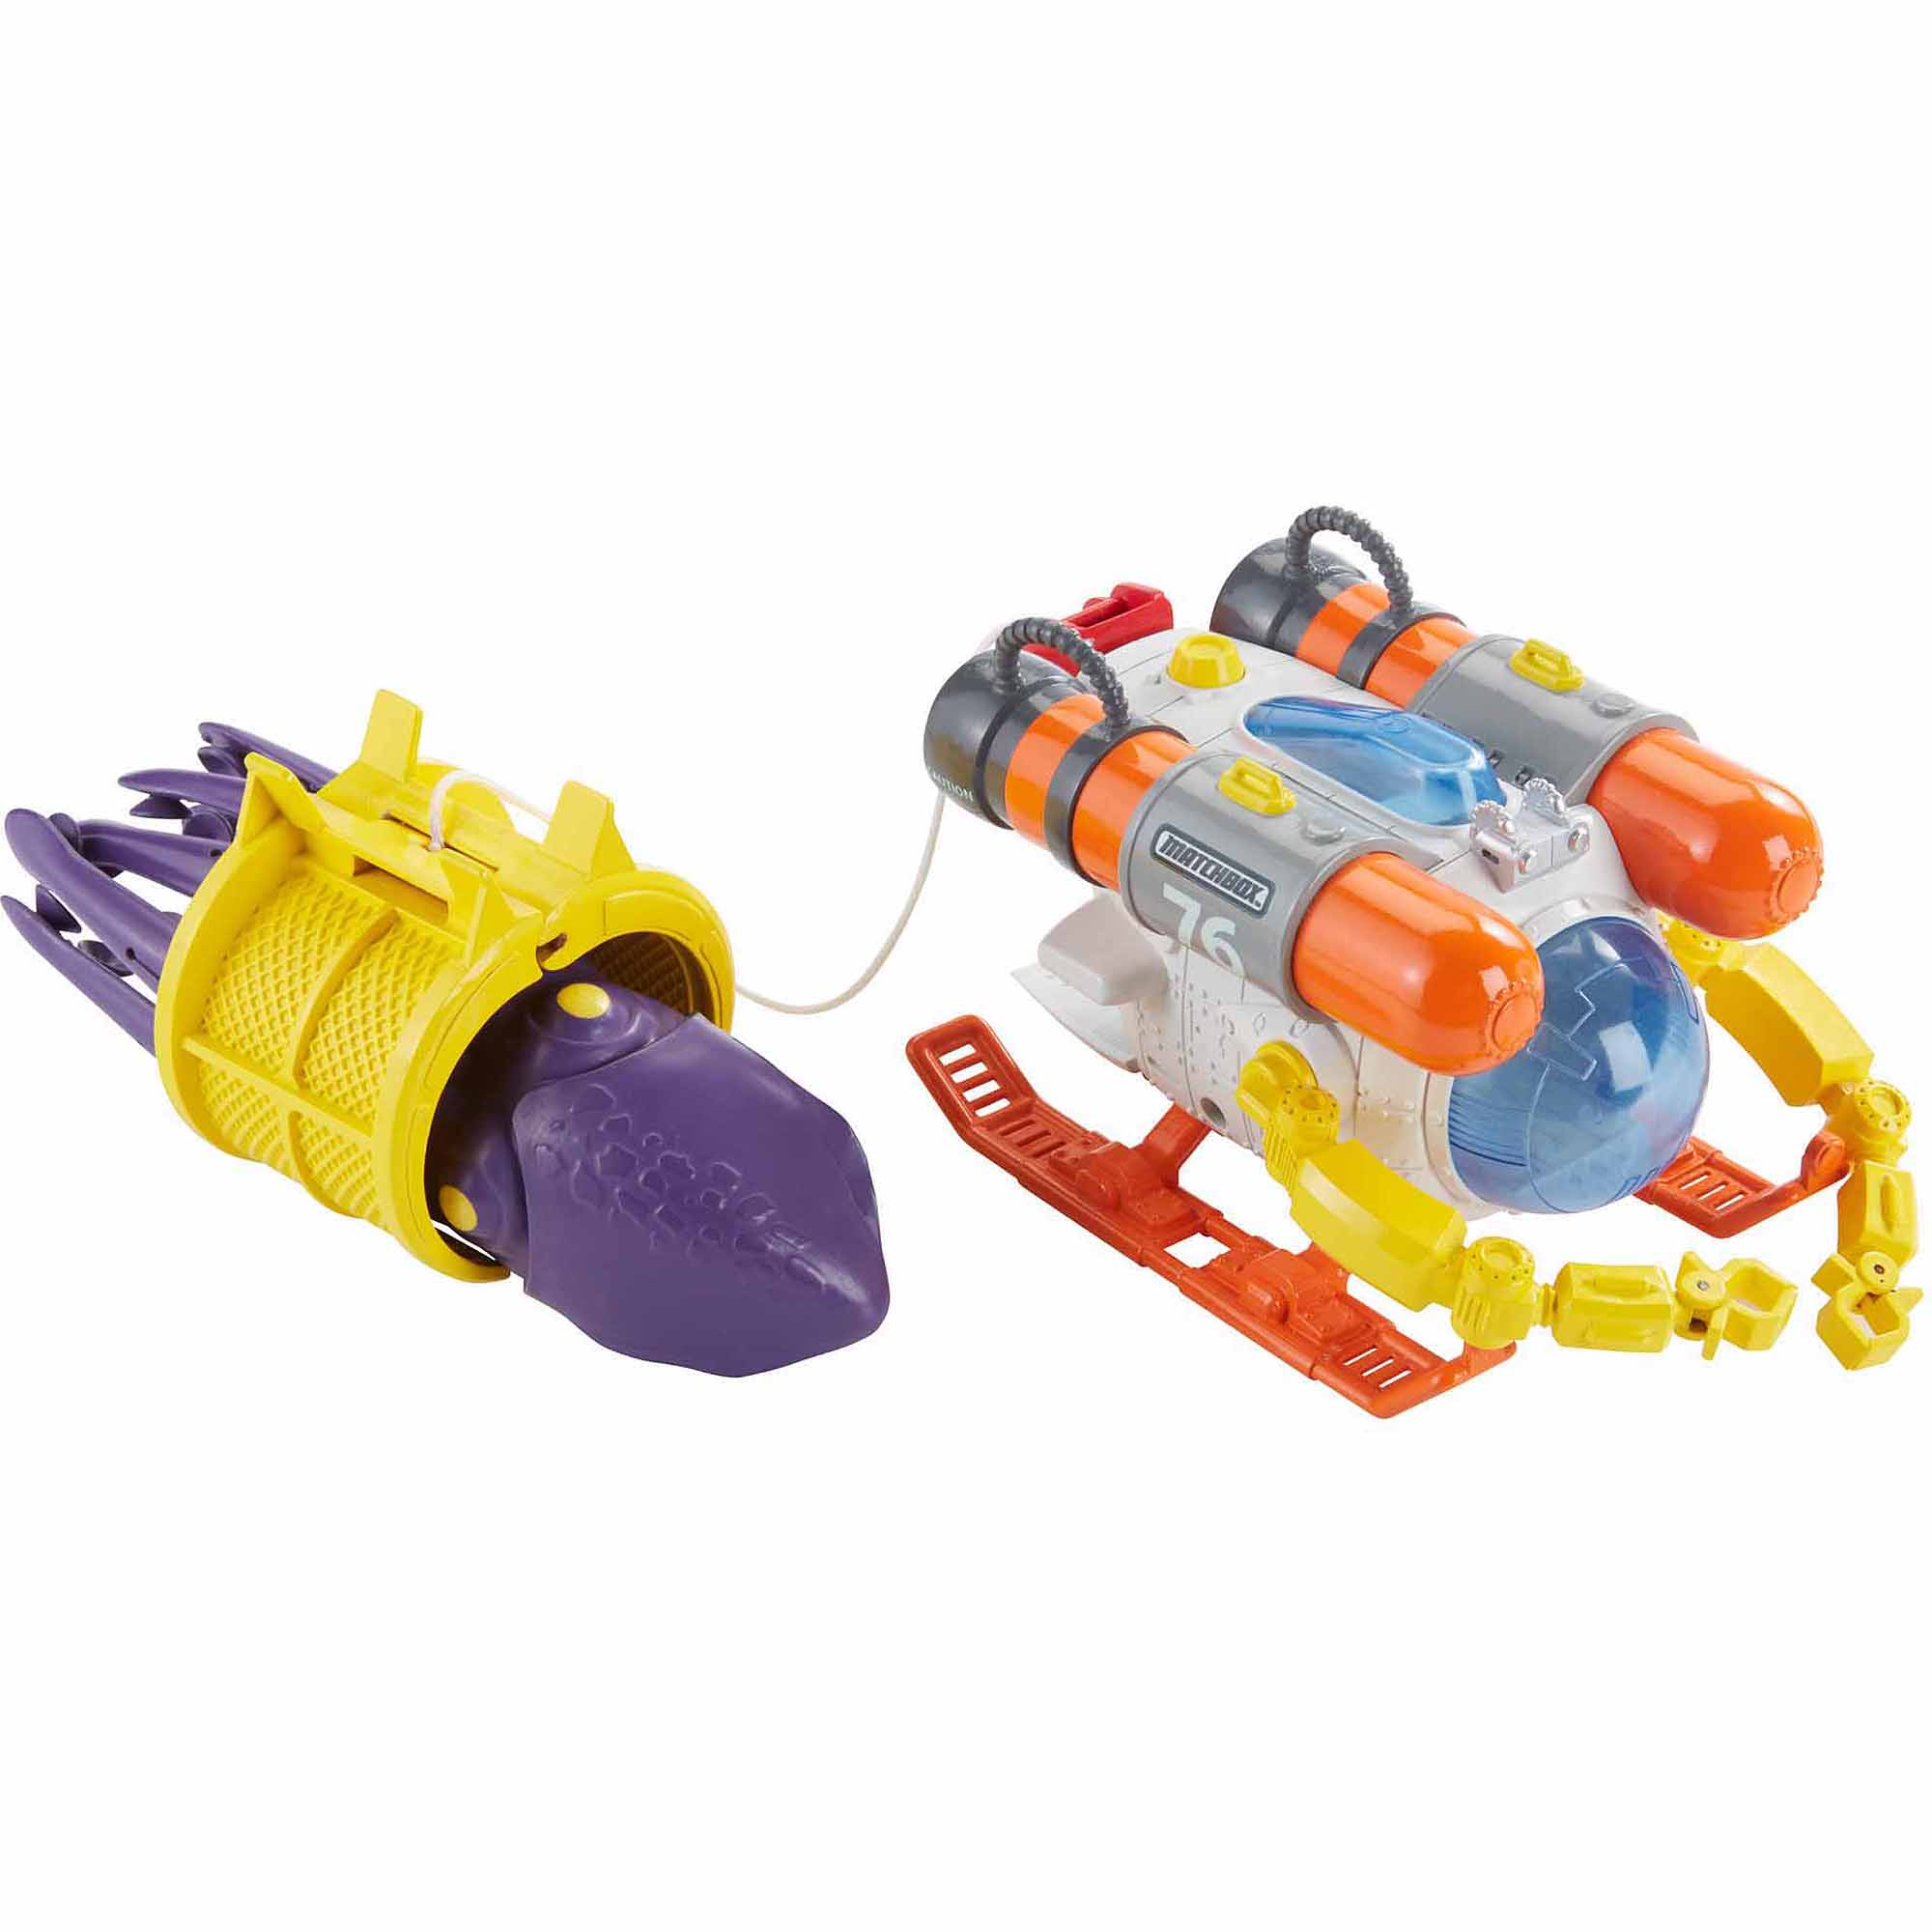 Matchbox Mission: Undersea Squid Sub Play Set